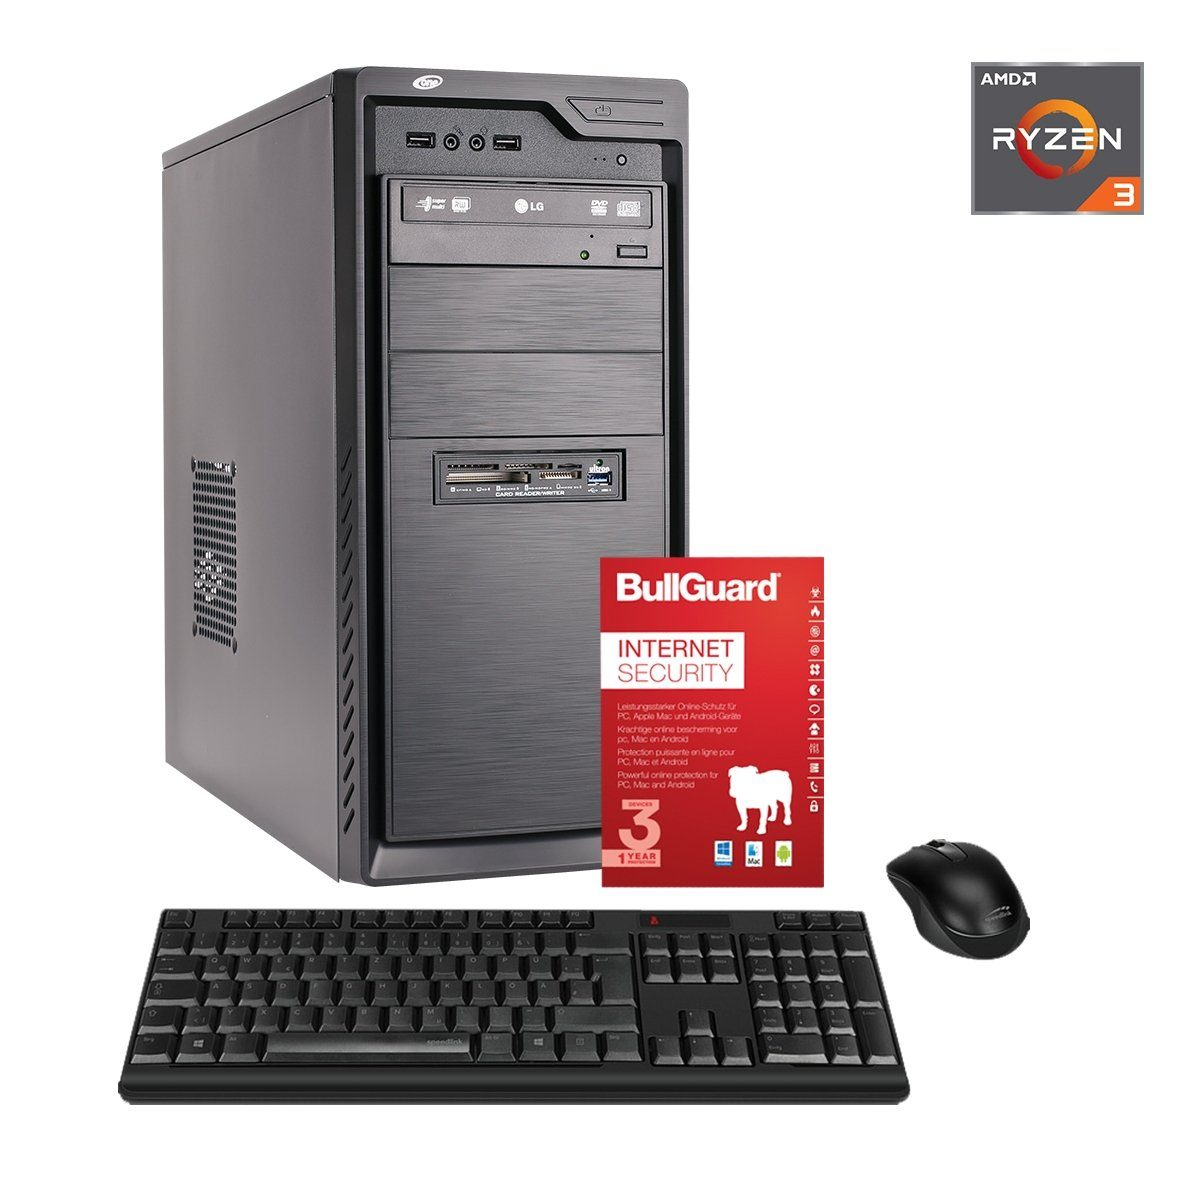 ONE PC, Ryzen 3 1300X, Radeon RX 550, 8GB DDR4 RAM »Office PC 44022«